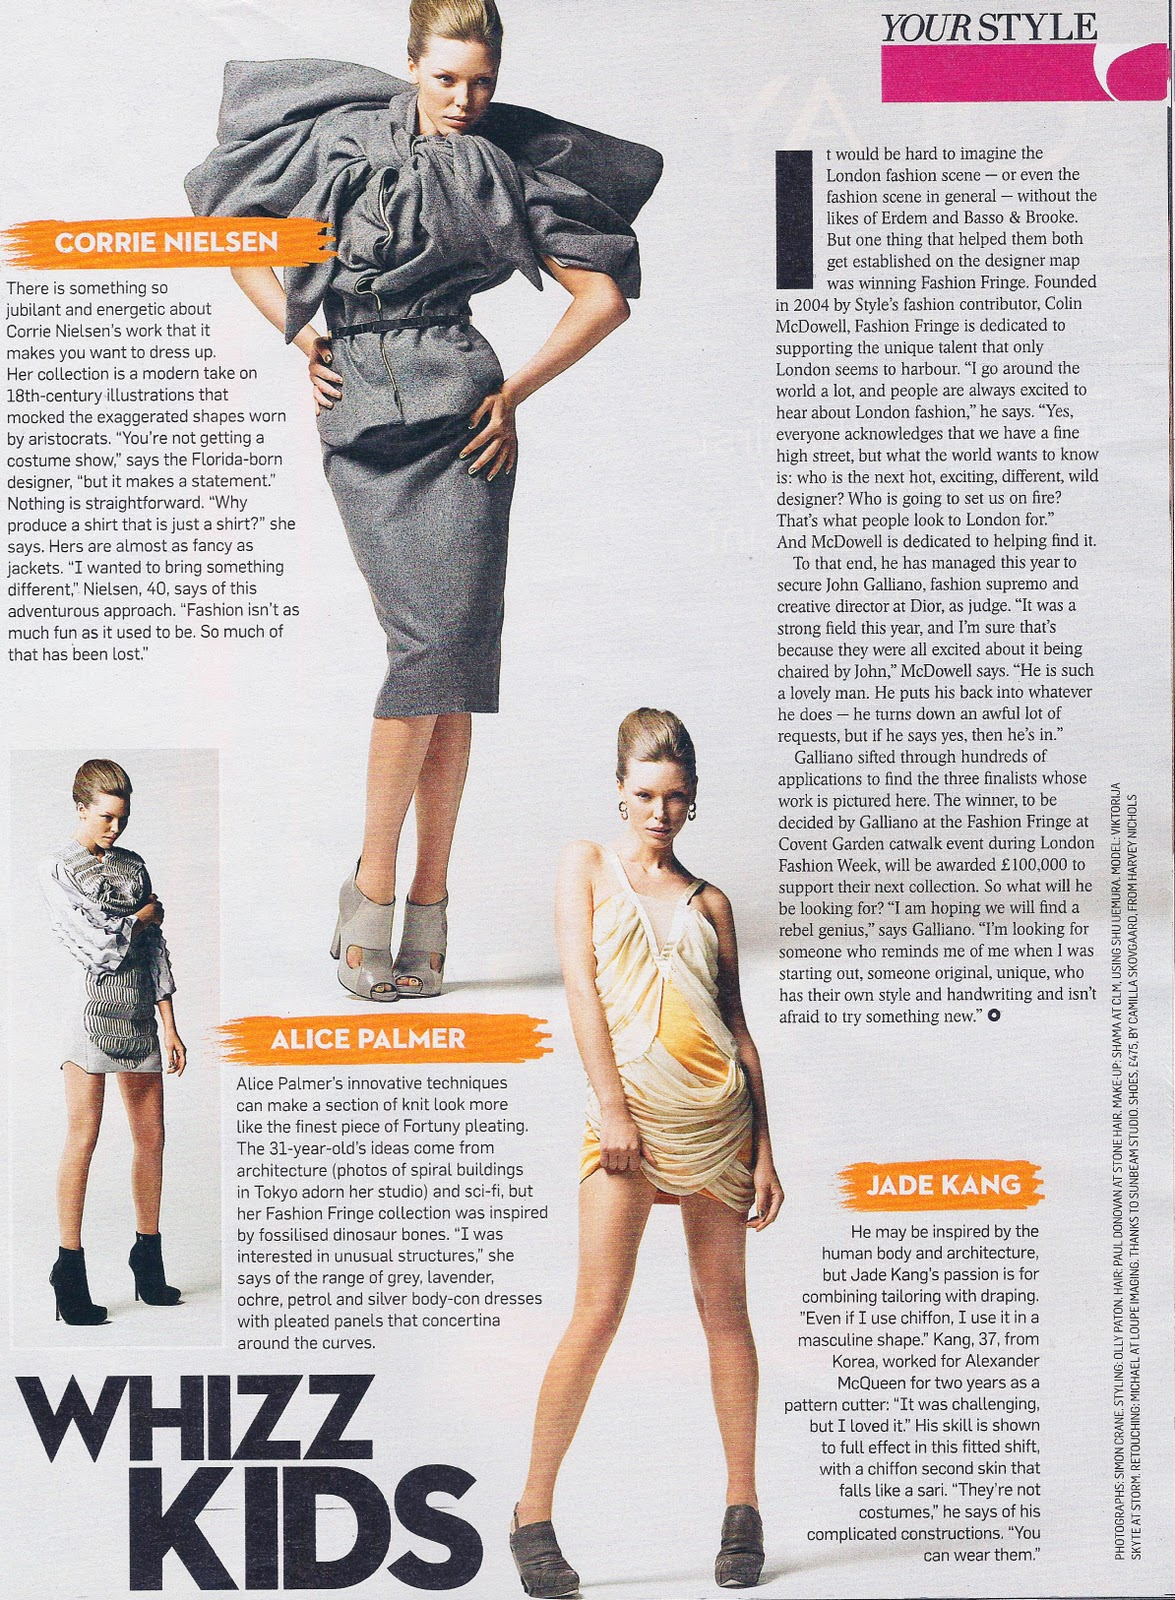 The Fashion Scout Sunday Times Style Features Finalists For Fashion Fringe